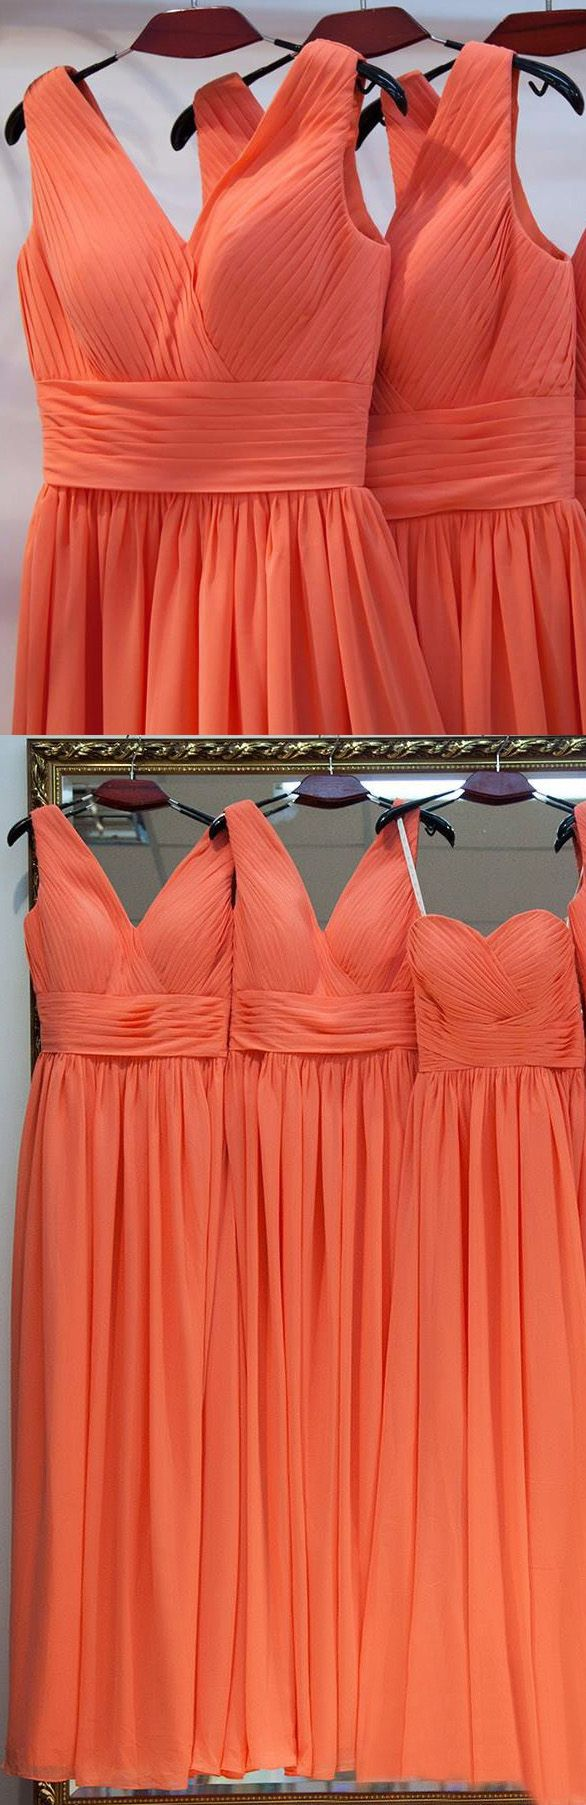 Long Coral Bridesmaid Dresses, Long Bridesmaid Dresses, Coral Bridesmaid Dresses, Coral Long dresses, Long Coral dresses, Bridesmaid Dresses Organge A-line V-neck Long Bridesmaid Dresses